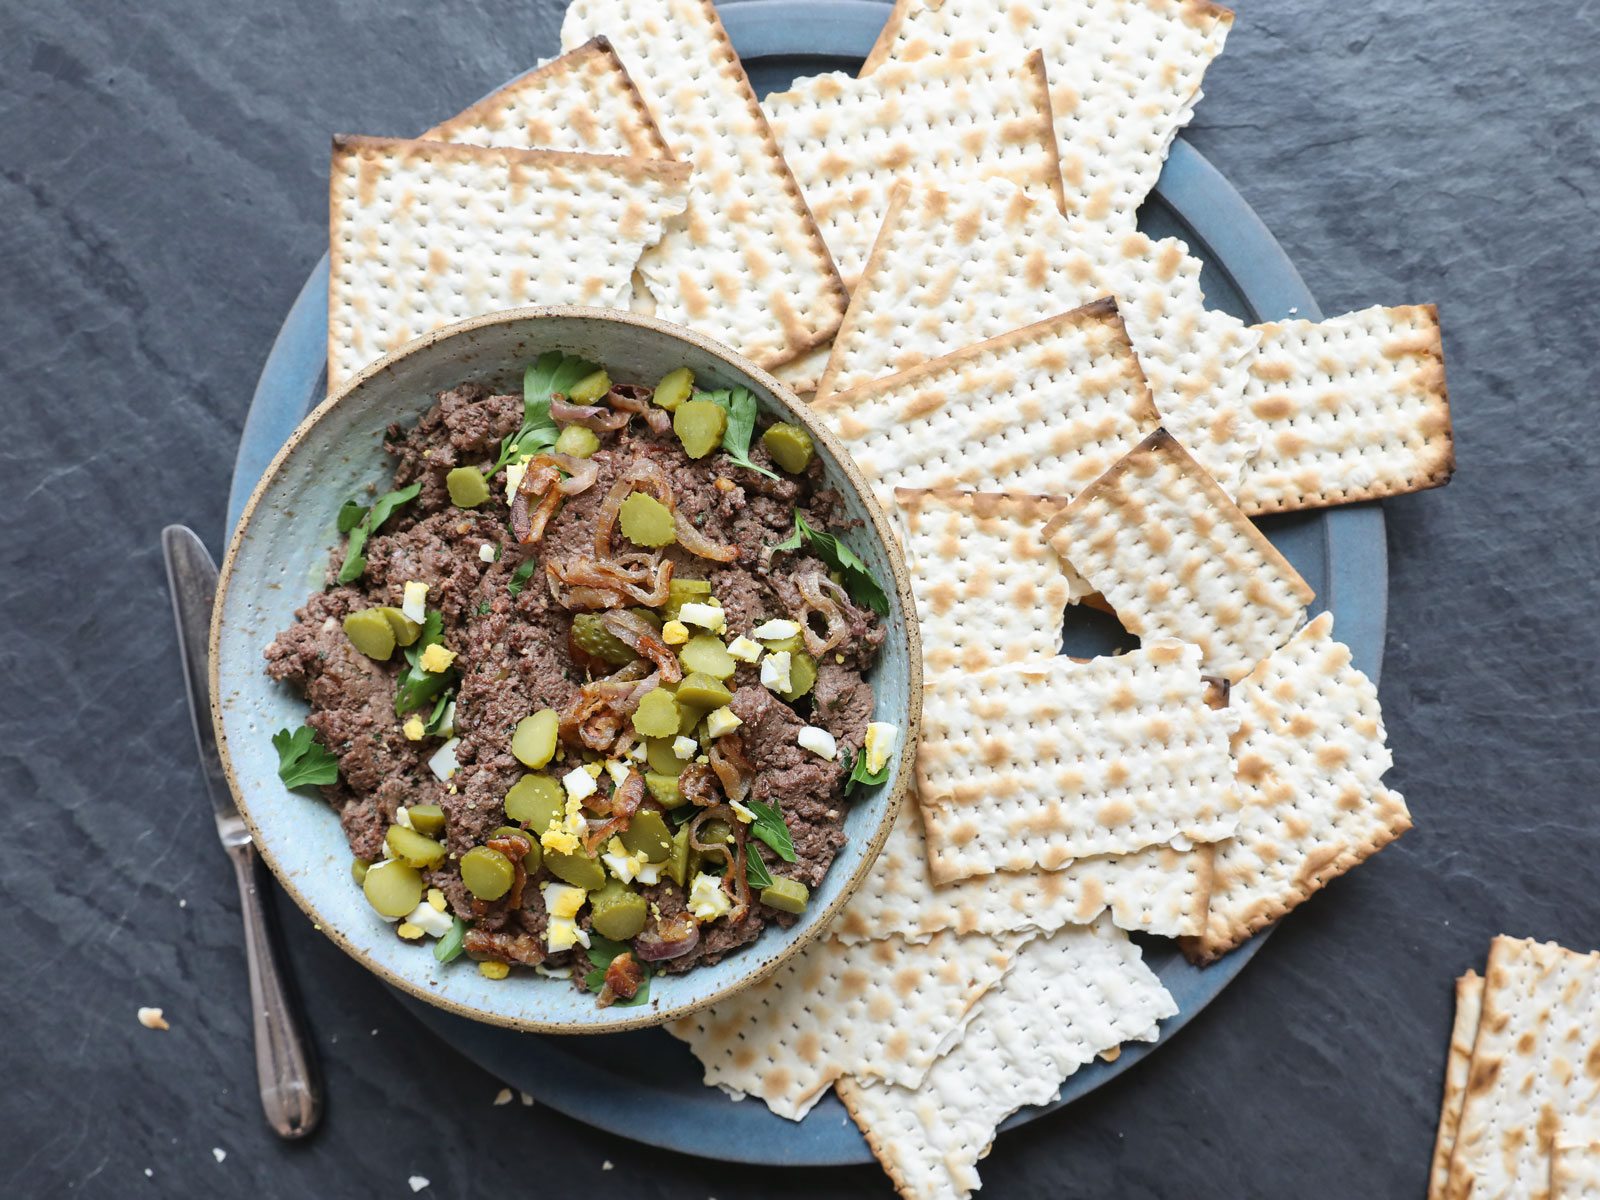 Gail Simmons Shares Her Mom's Classic Recipe for Chopped Chicken Liver